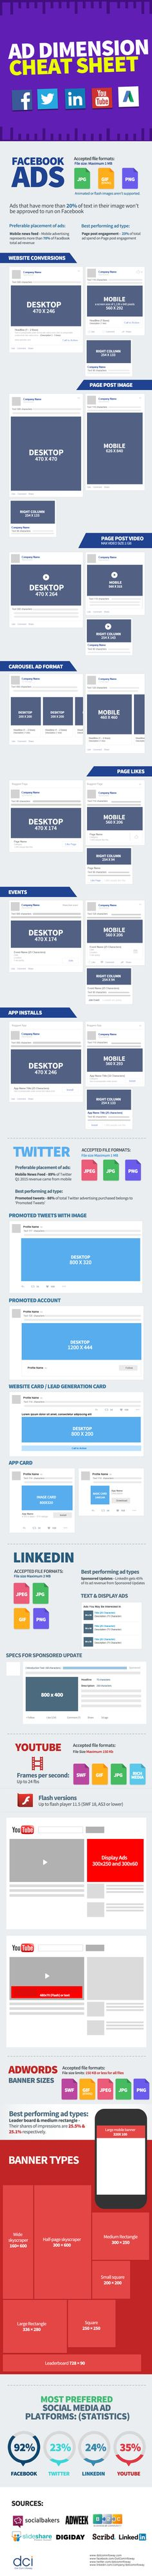 The Ultimate Cheat Sheet of Advertisement Sizes on Facebook, Twitter, LinkedIn & Other Social Networks [Infographic], via @HubSpot